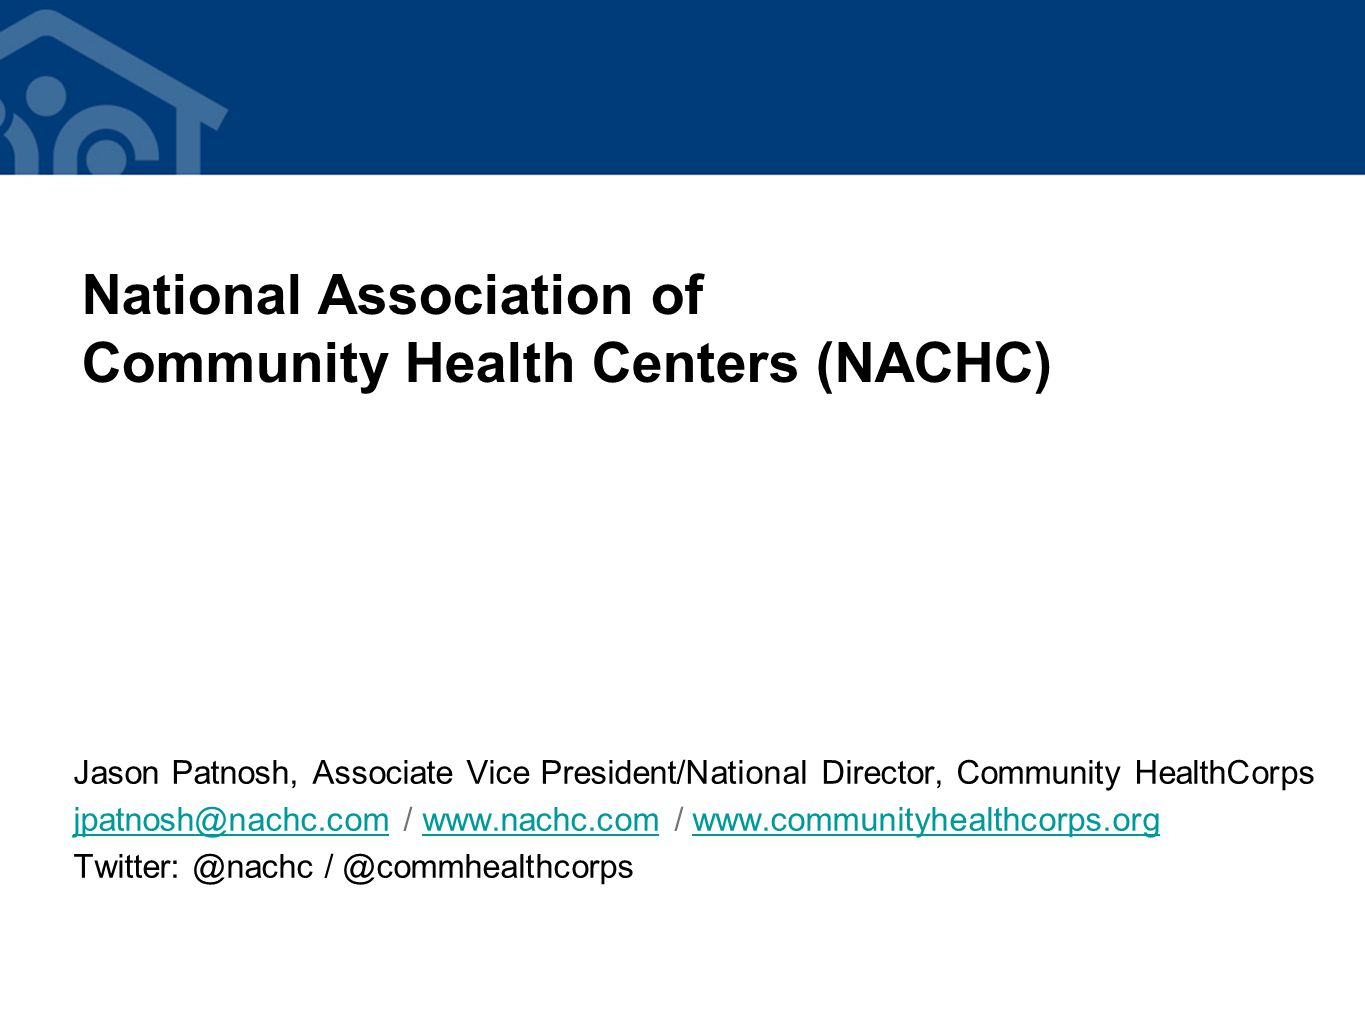 National Association of Community Health Centers (NACHC) Jason Patnosh, Associate Vice President/National Director, Community HealthCorps /   /